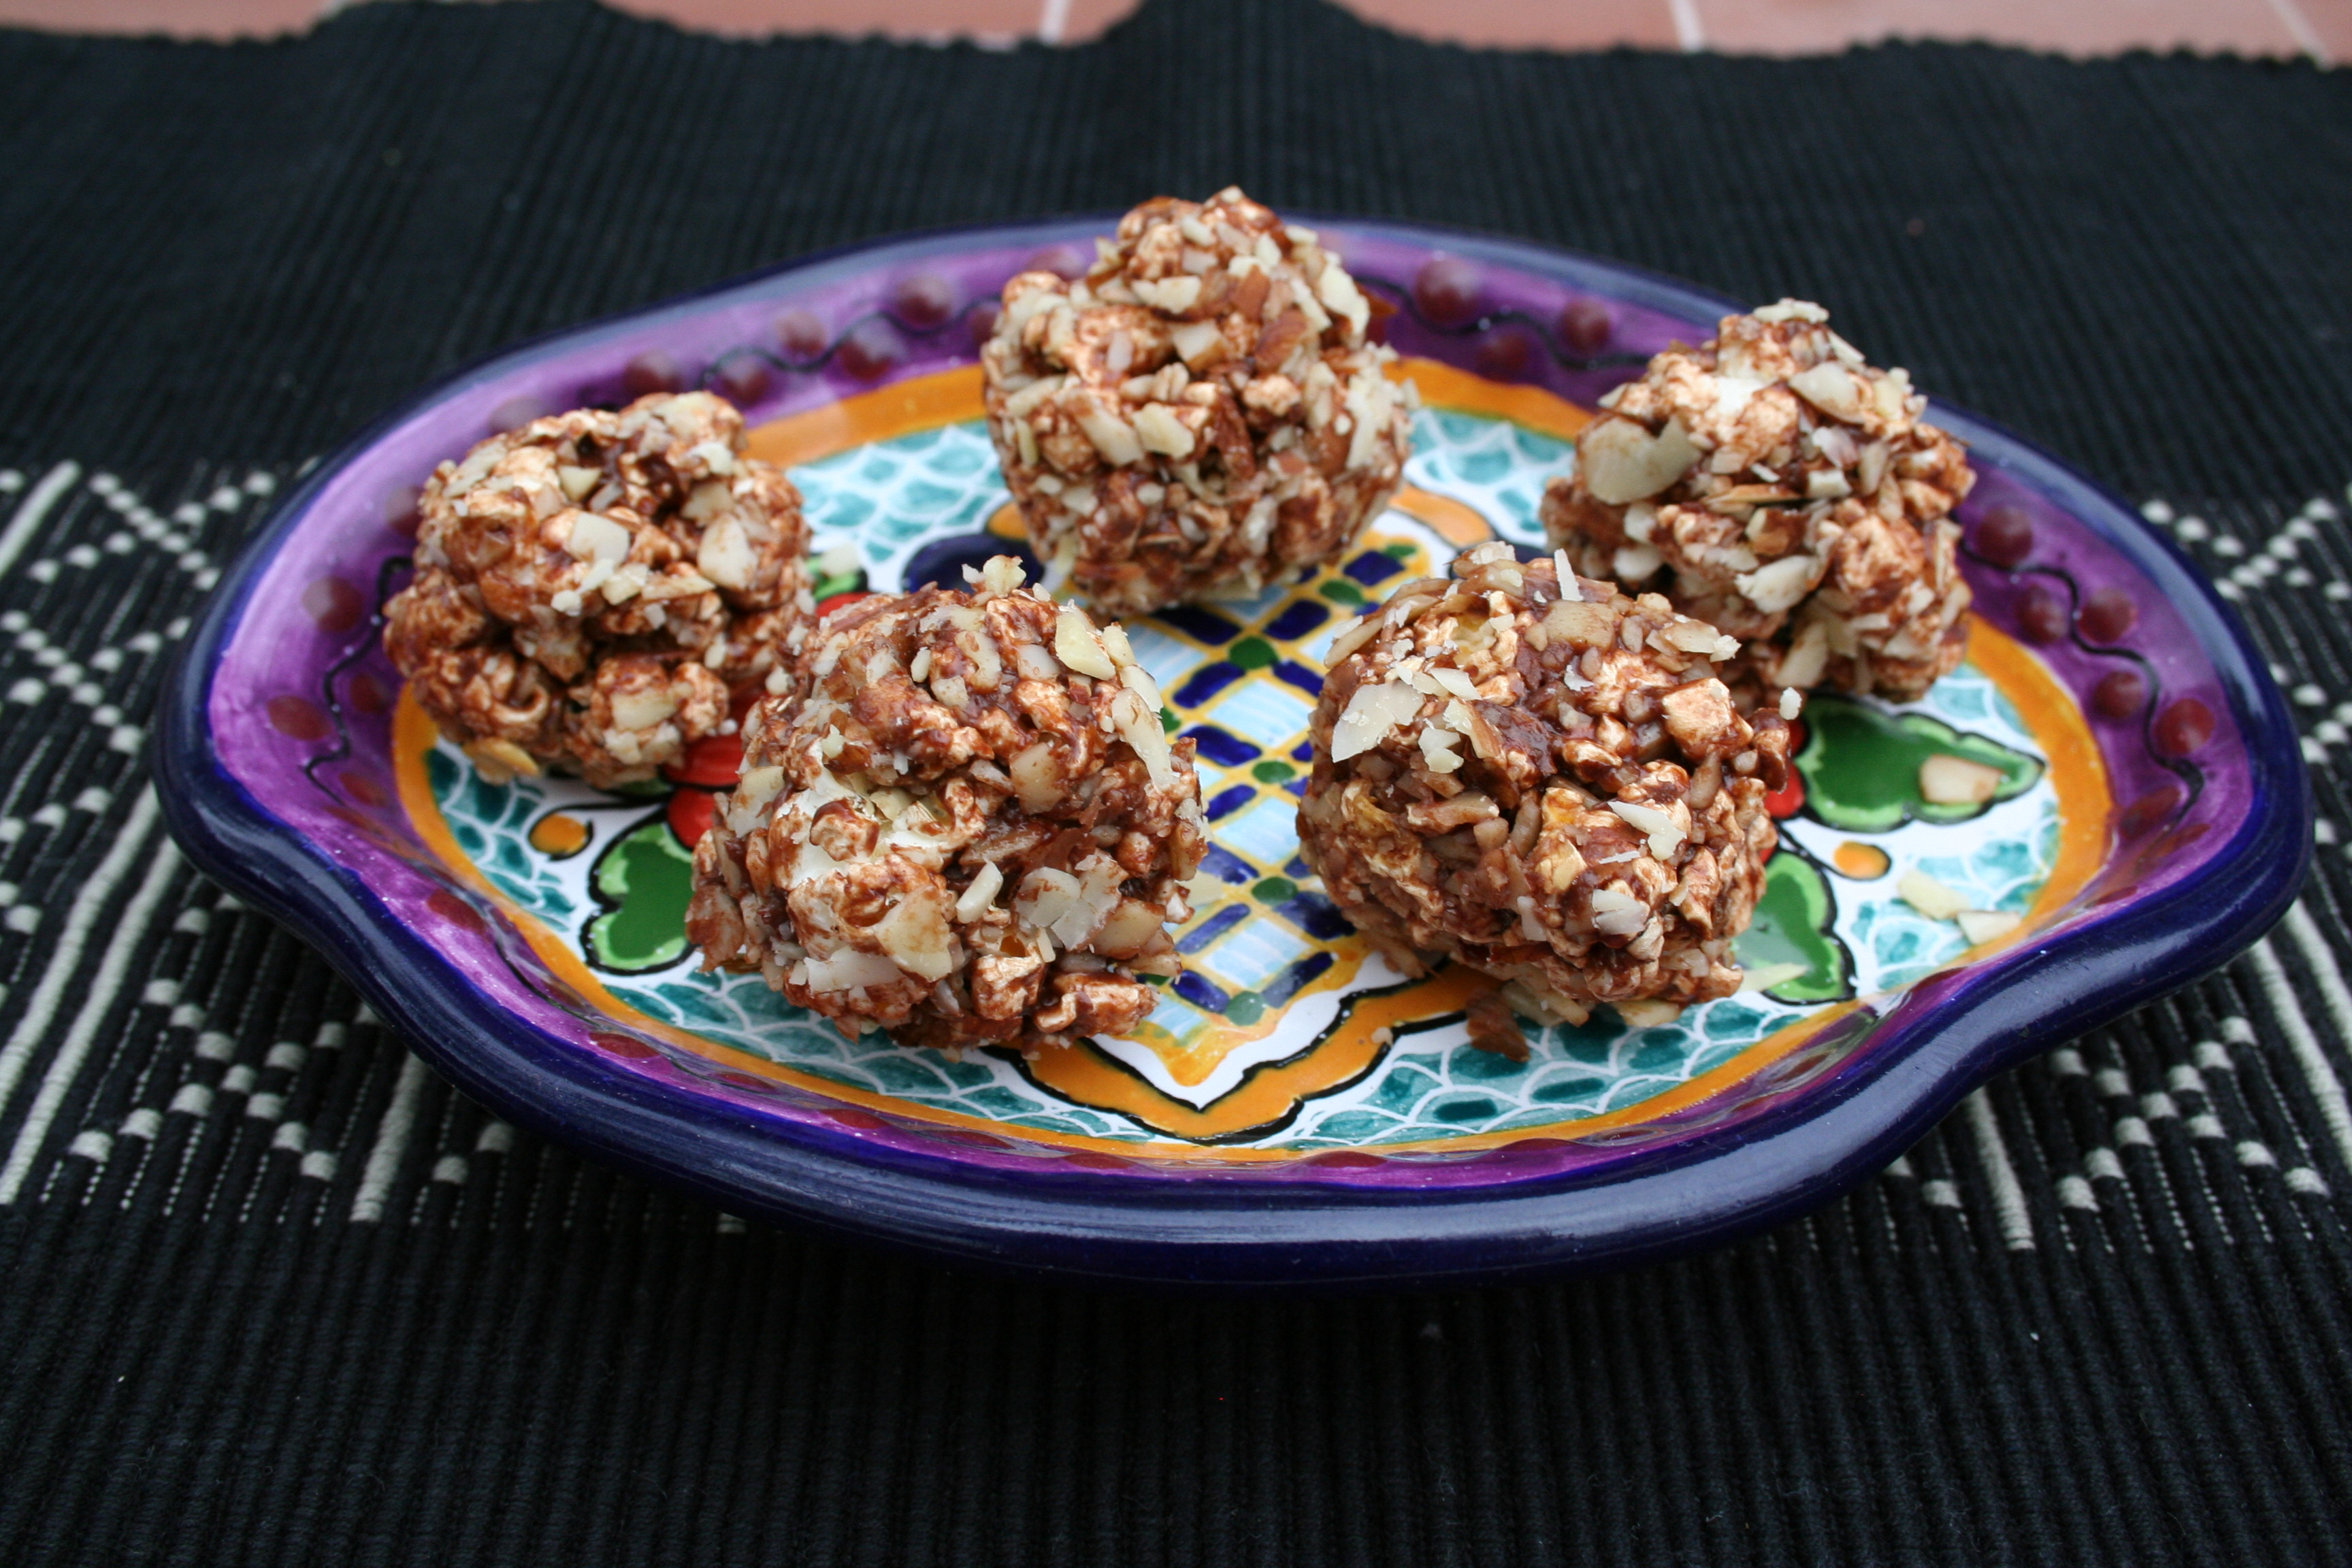 Popcorn Balls with Chocolate and Almonds